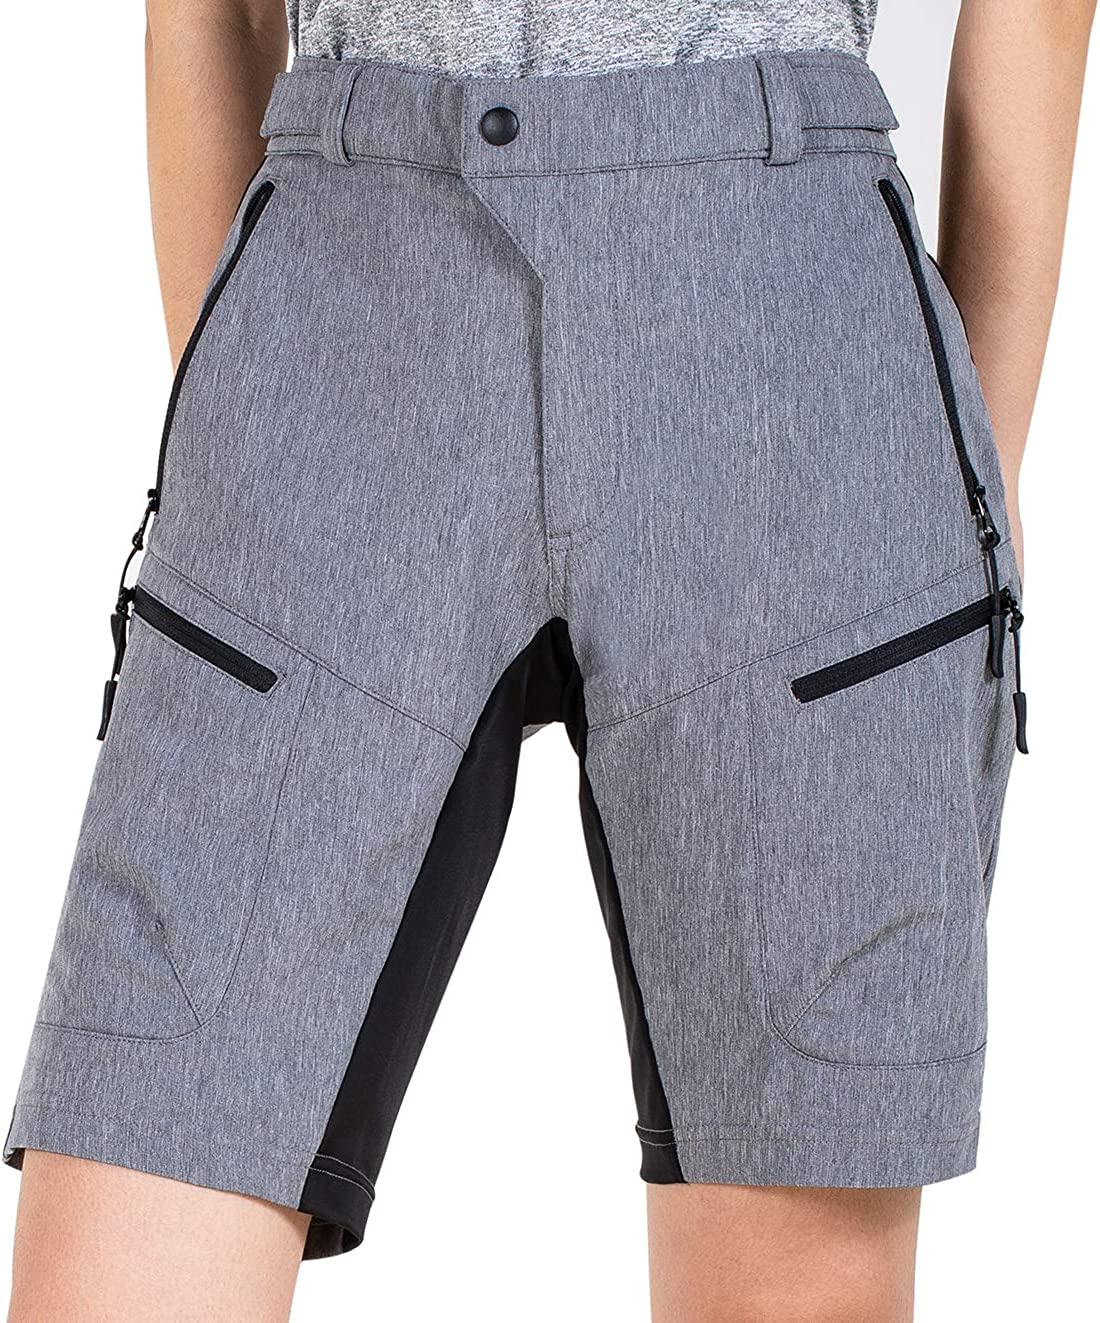 Cycorld Women's-Mountain-Bike-MTB-Shorts Baggy-Fashion-Breathable with Zip Pockets: Clothing